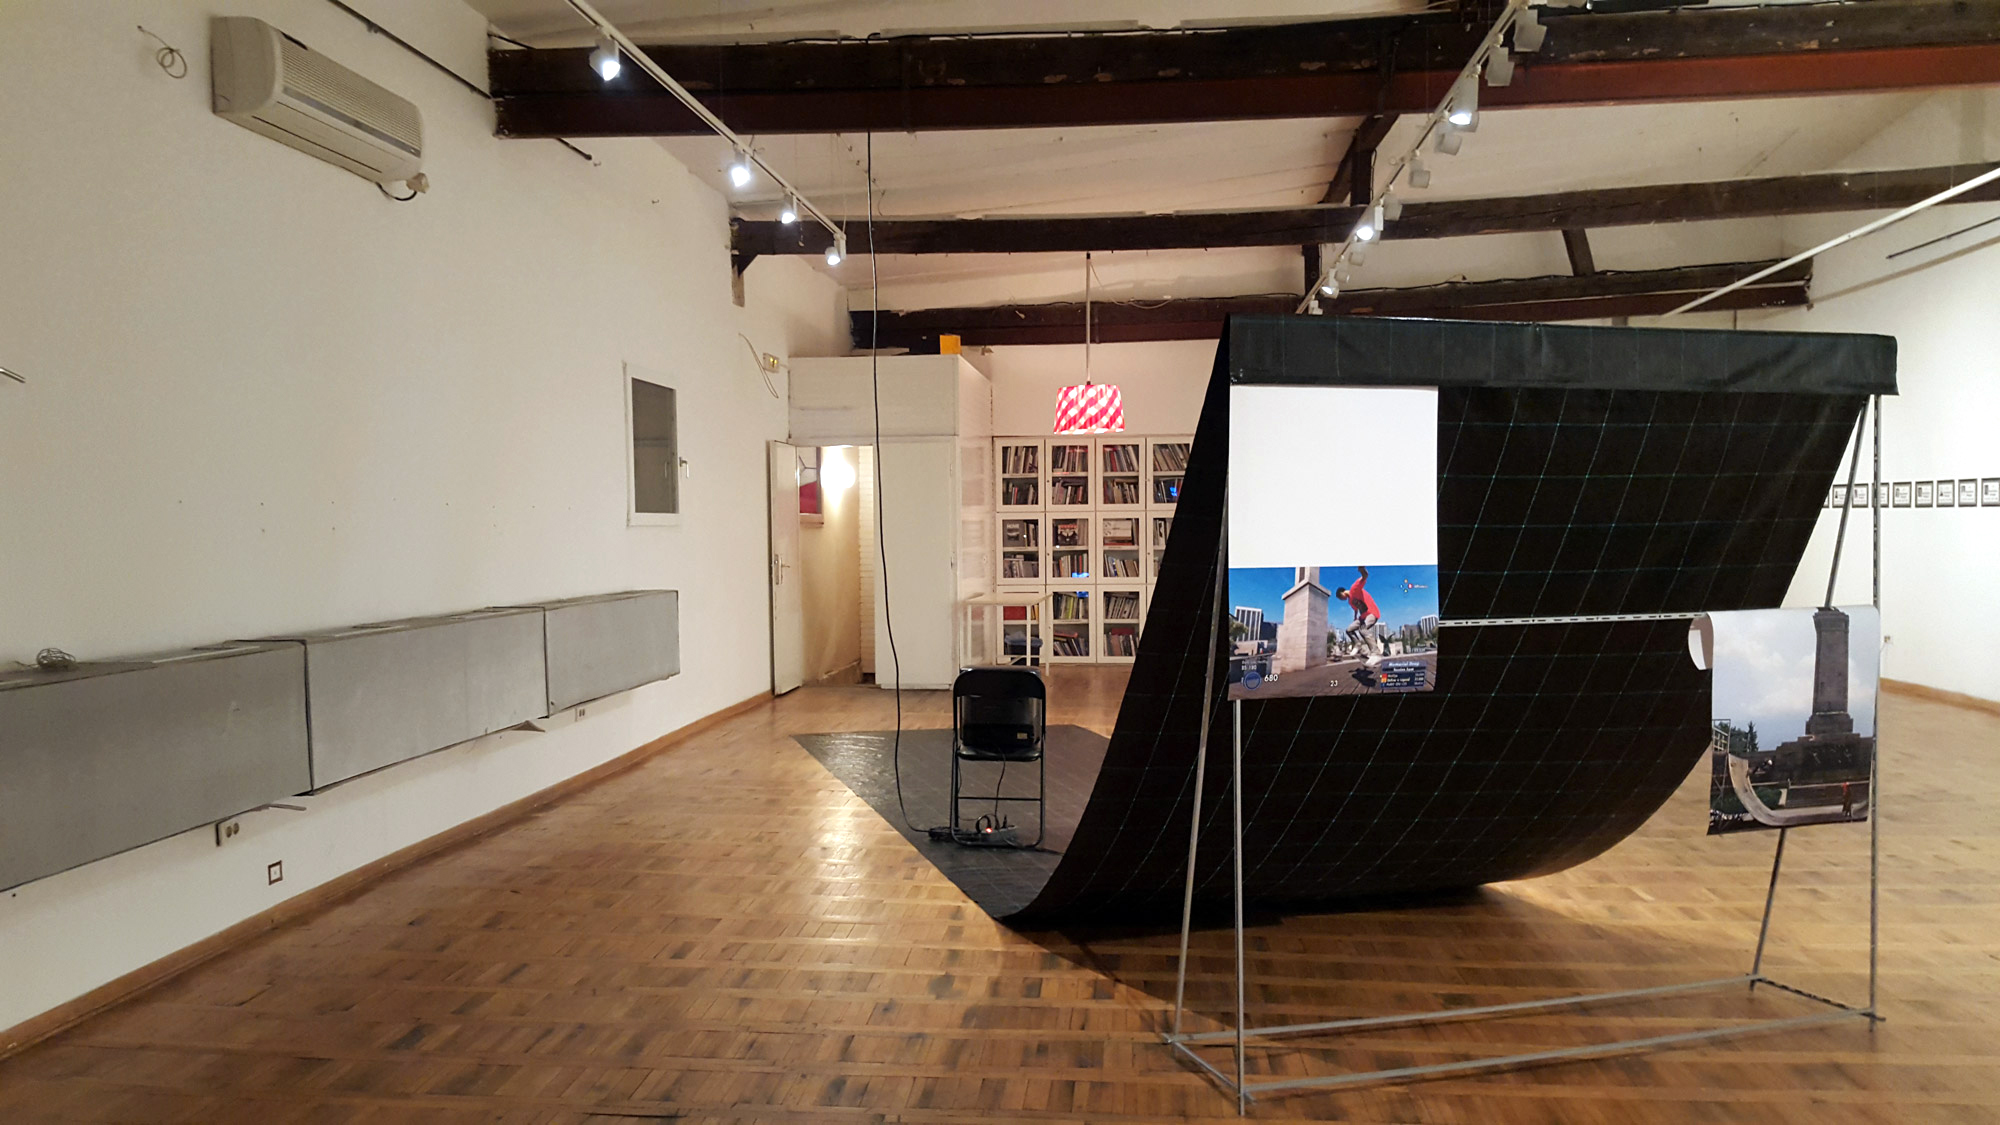 exhibition view, A Direct Model for Physical Action (2 monitors, 2 inkjet prints, plastic foil, metal, chair, wood)